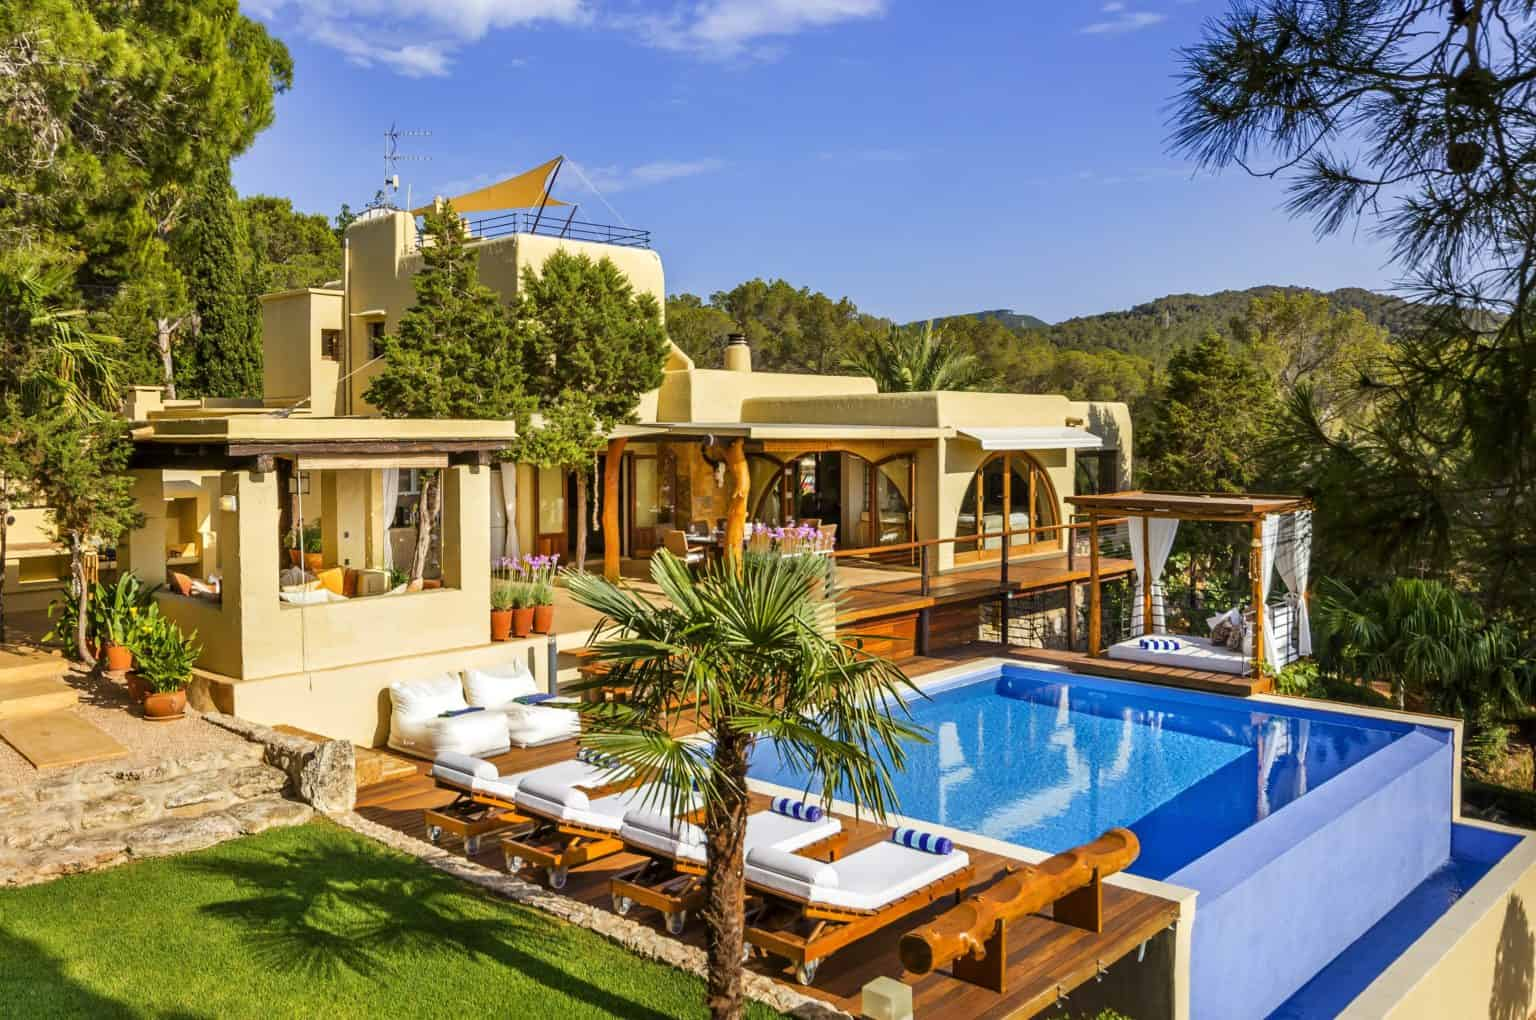 villa rental in ibiza with 4 bedrooms can elengeni balearic bliss